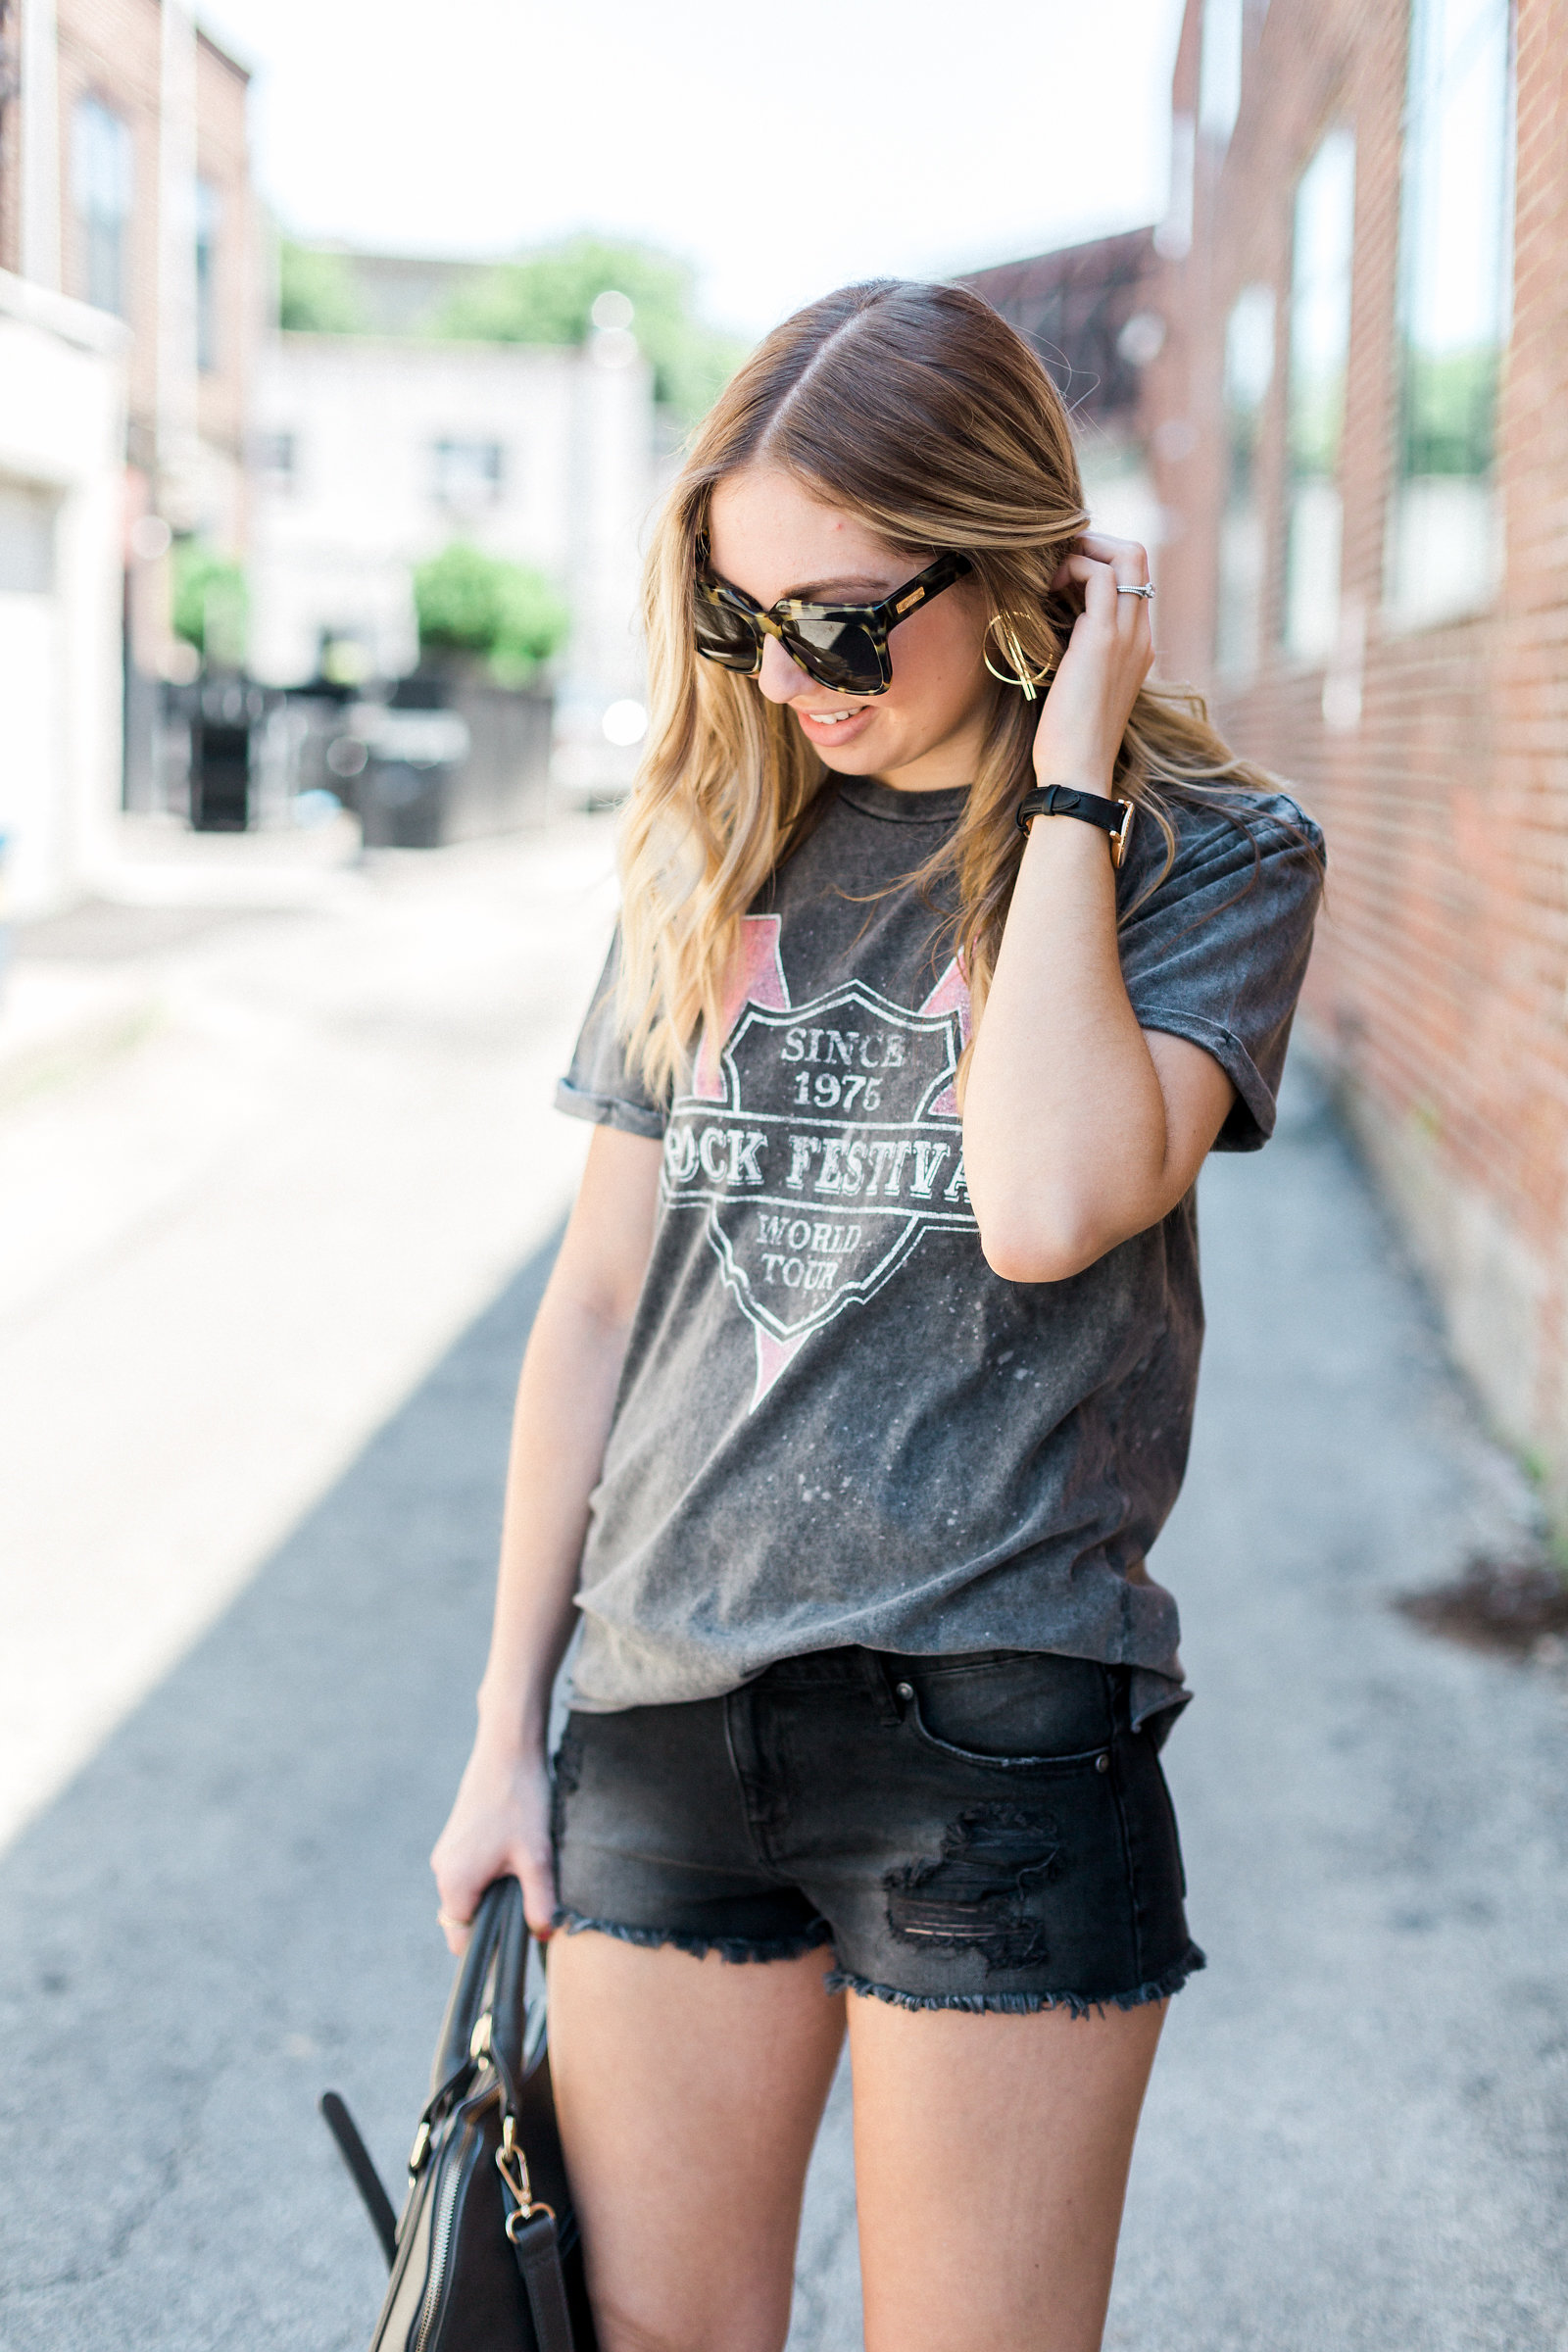 photo of blogger in denim shorts and graphic tee posing in Ardmore, PA shopping district